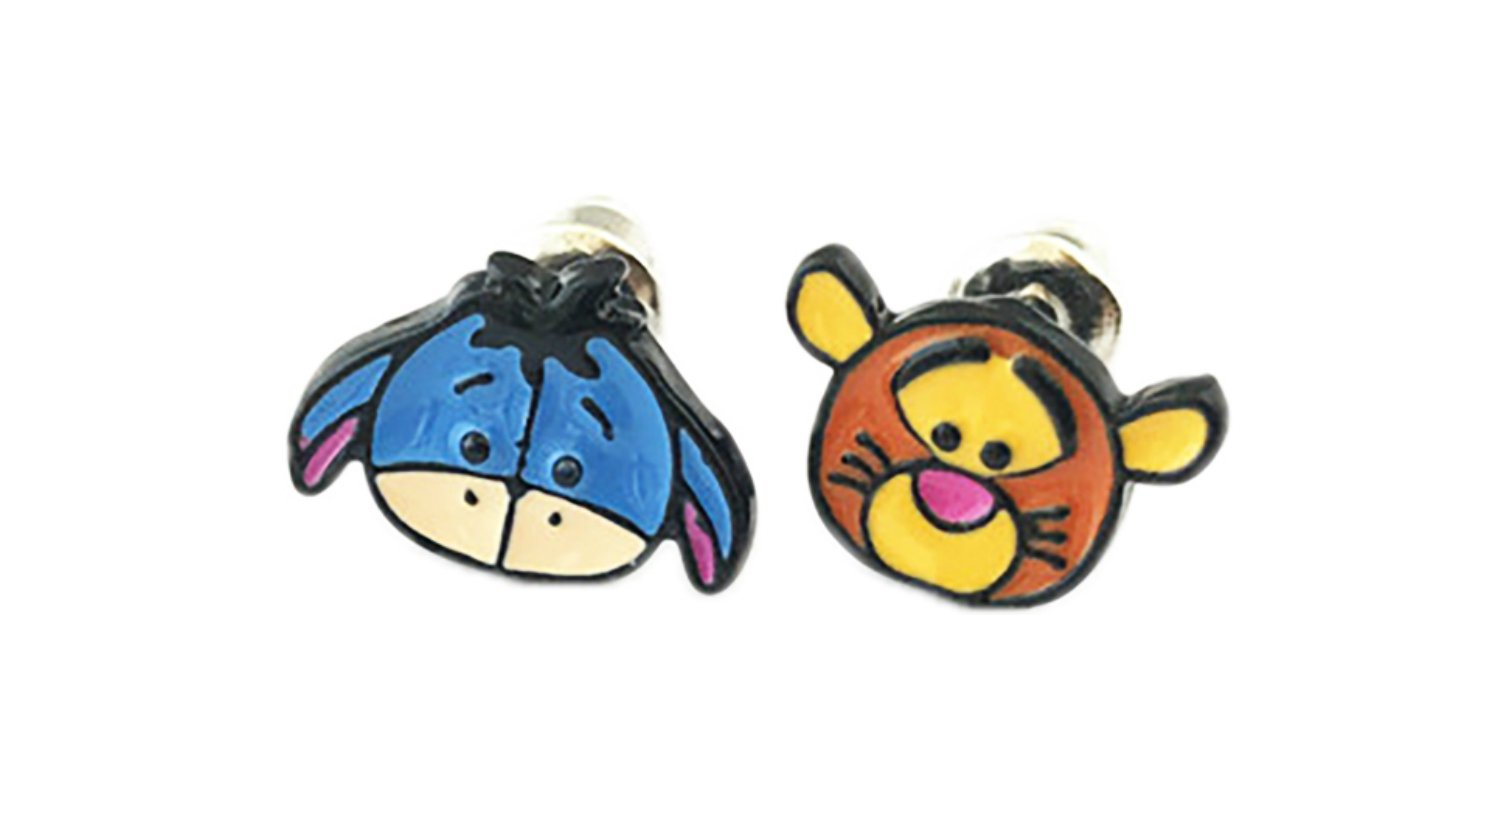 Eeyore and Tigger Winnie the Pooh Stud Earrings With Gift Box from Outlander Gear